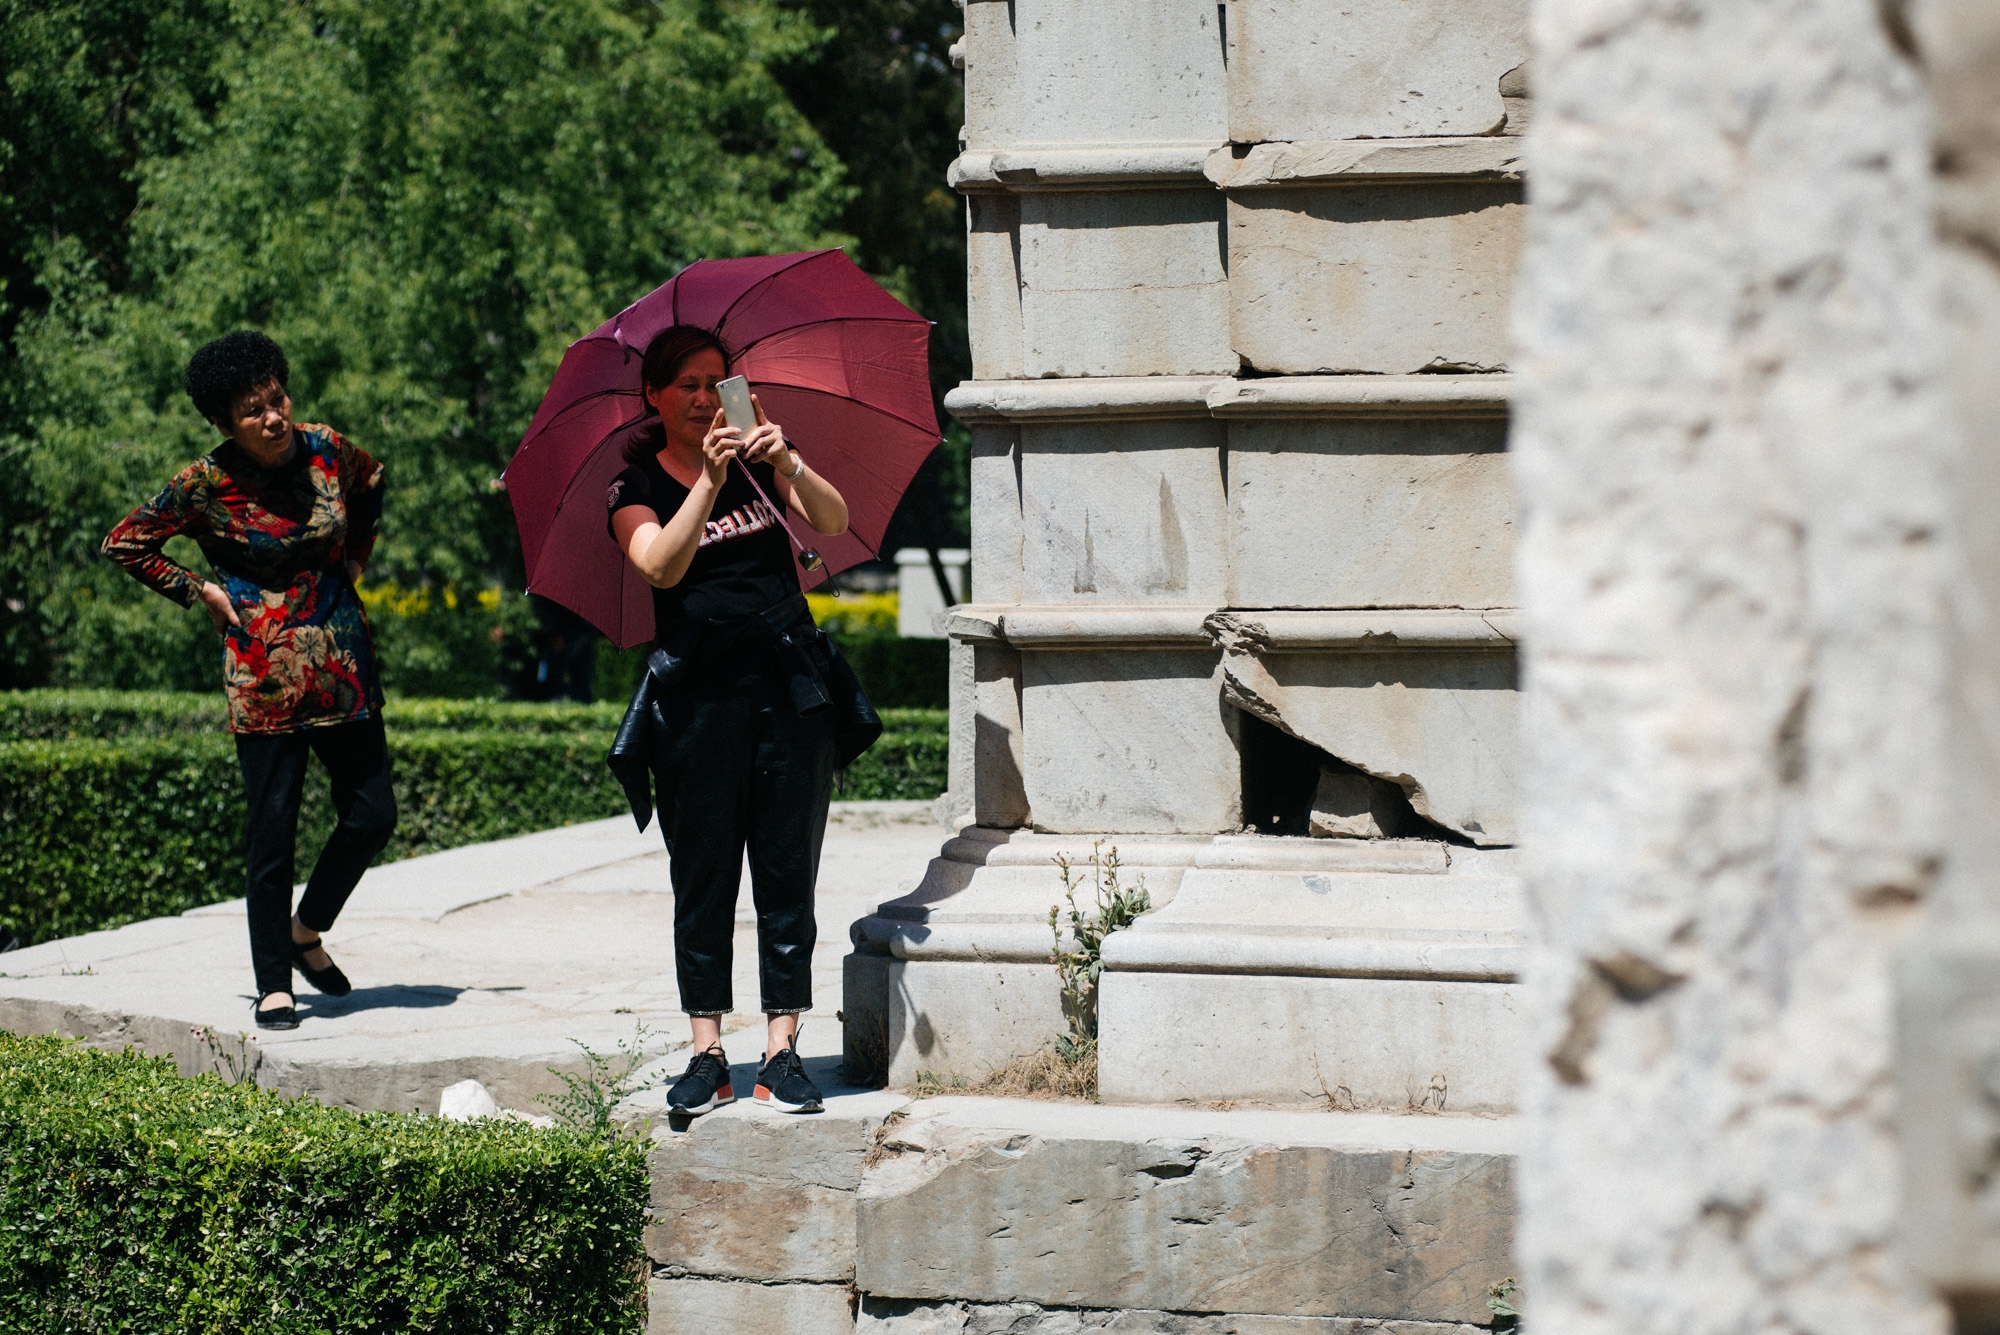 In China, it's very common to see people, specially women, with umbrellas to protect themselves from the sun.